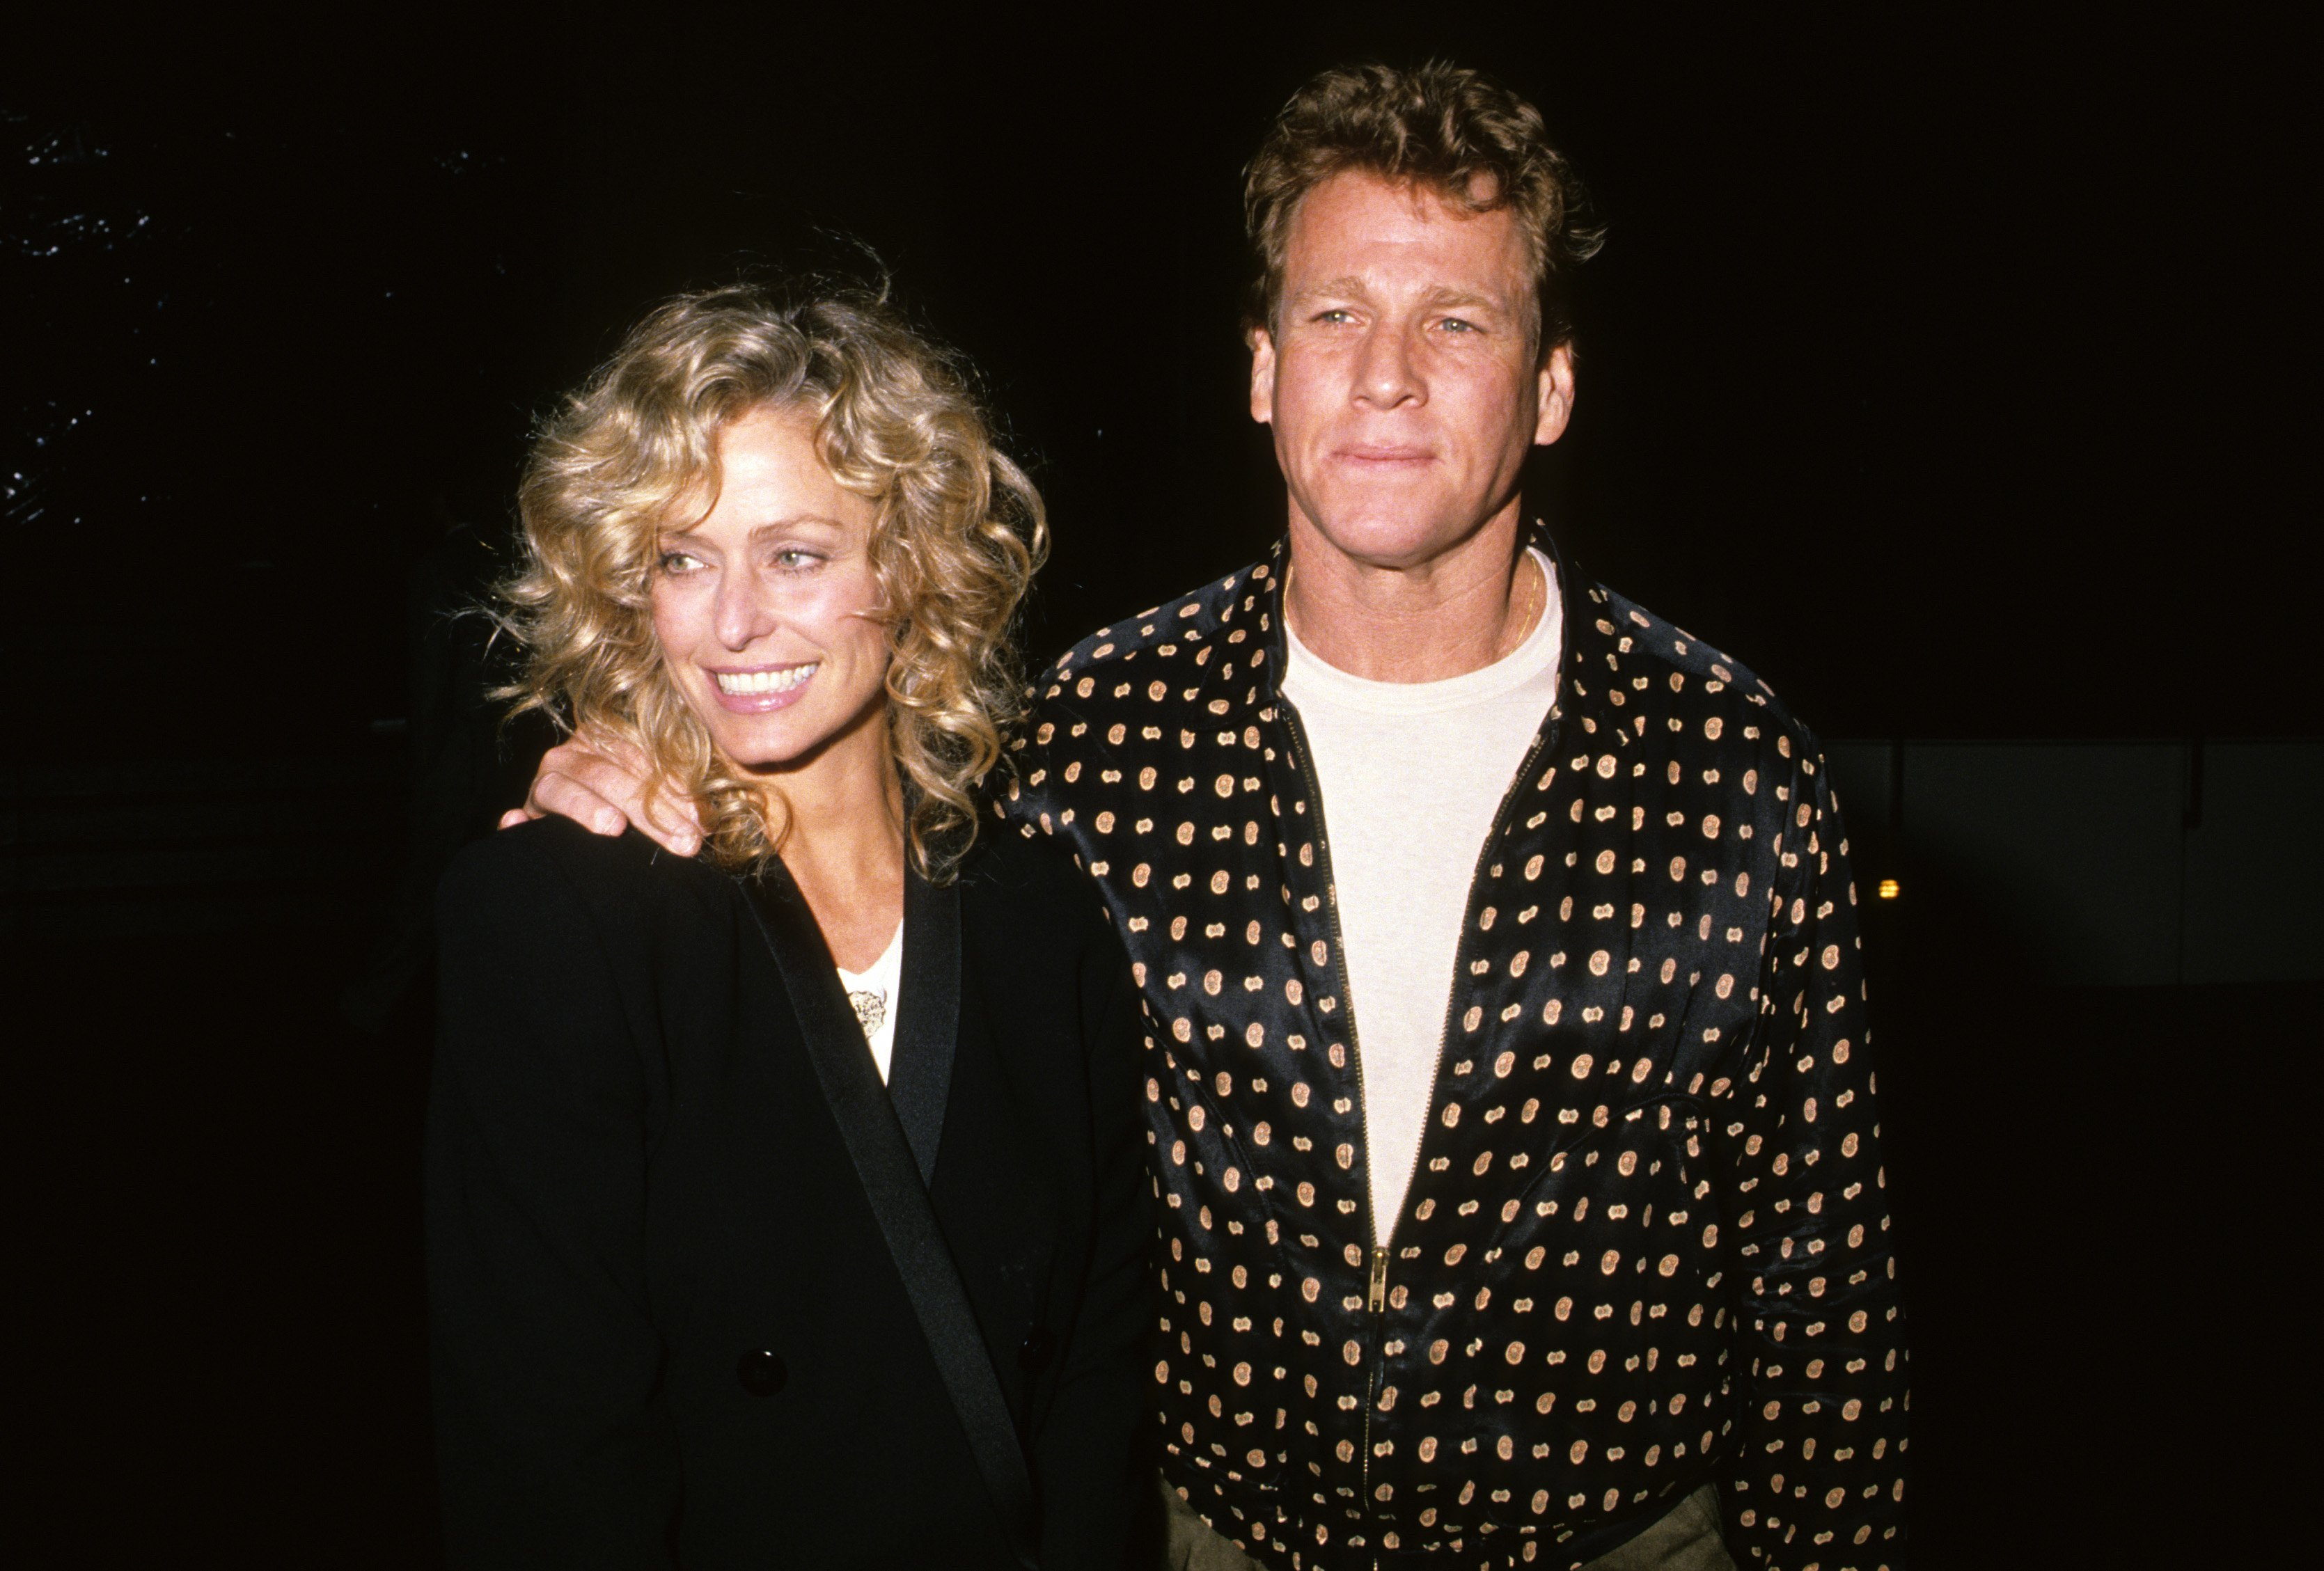 A snapshot of Farrah Fawcett and Ryan O'Neal from March 1989. | Source: Getty Images